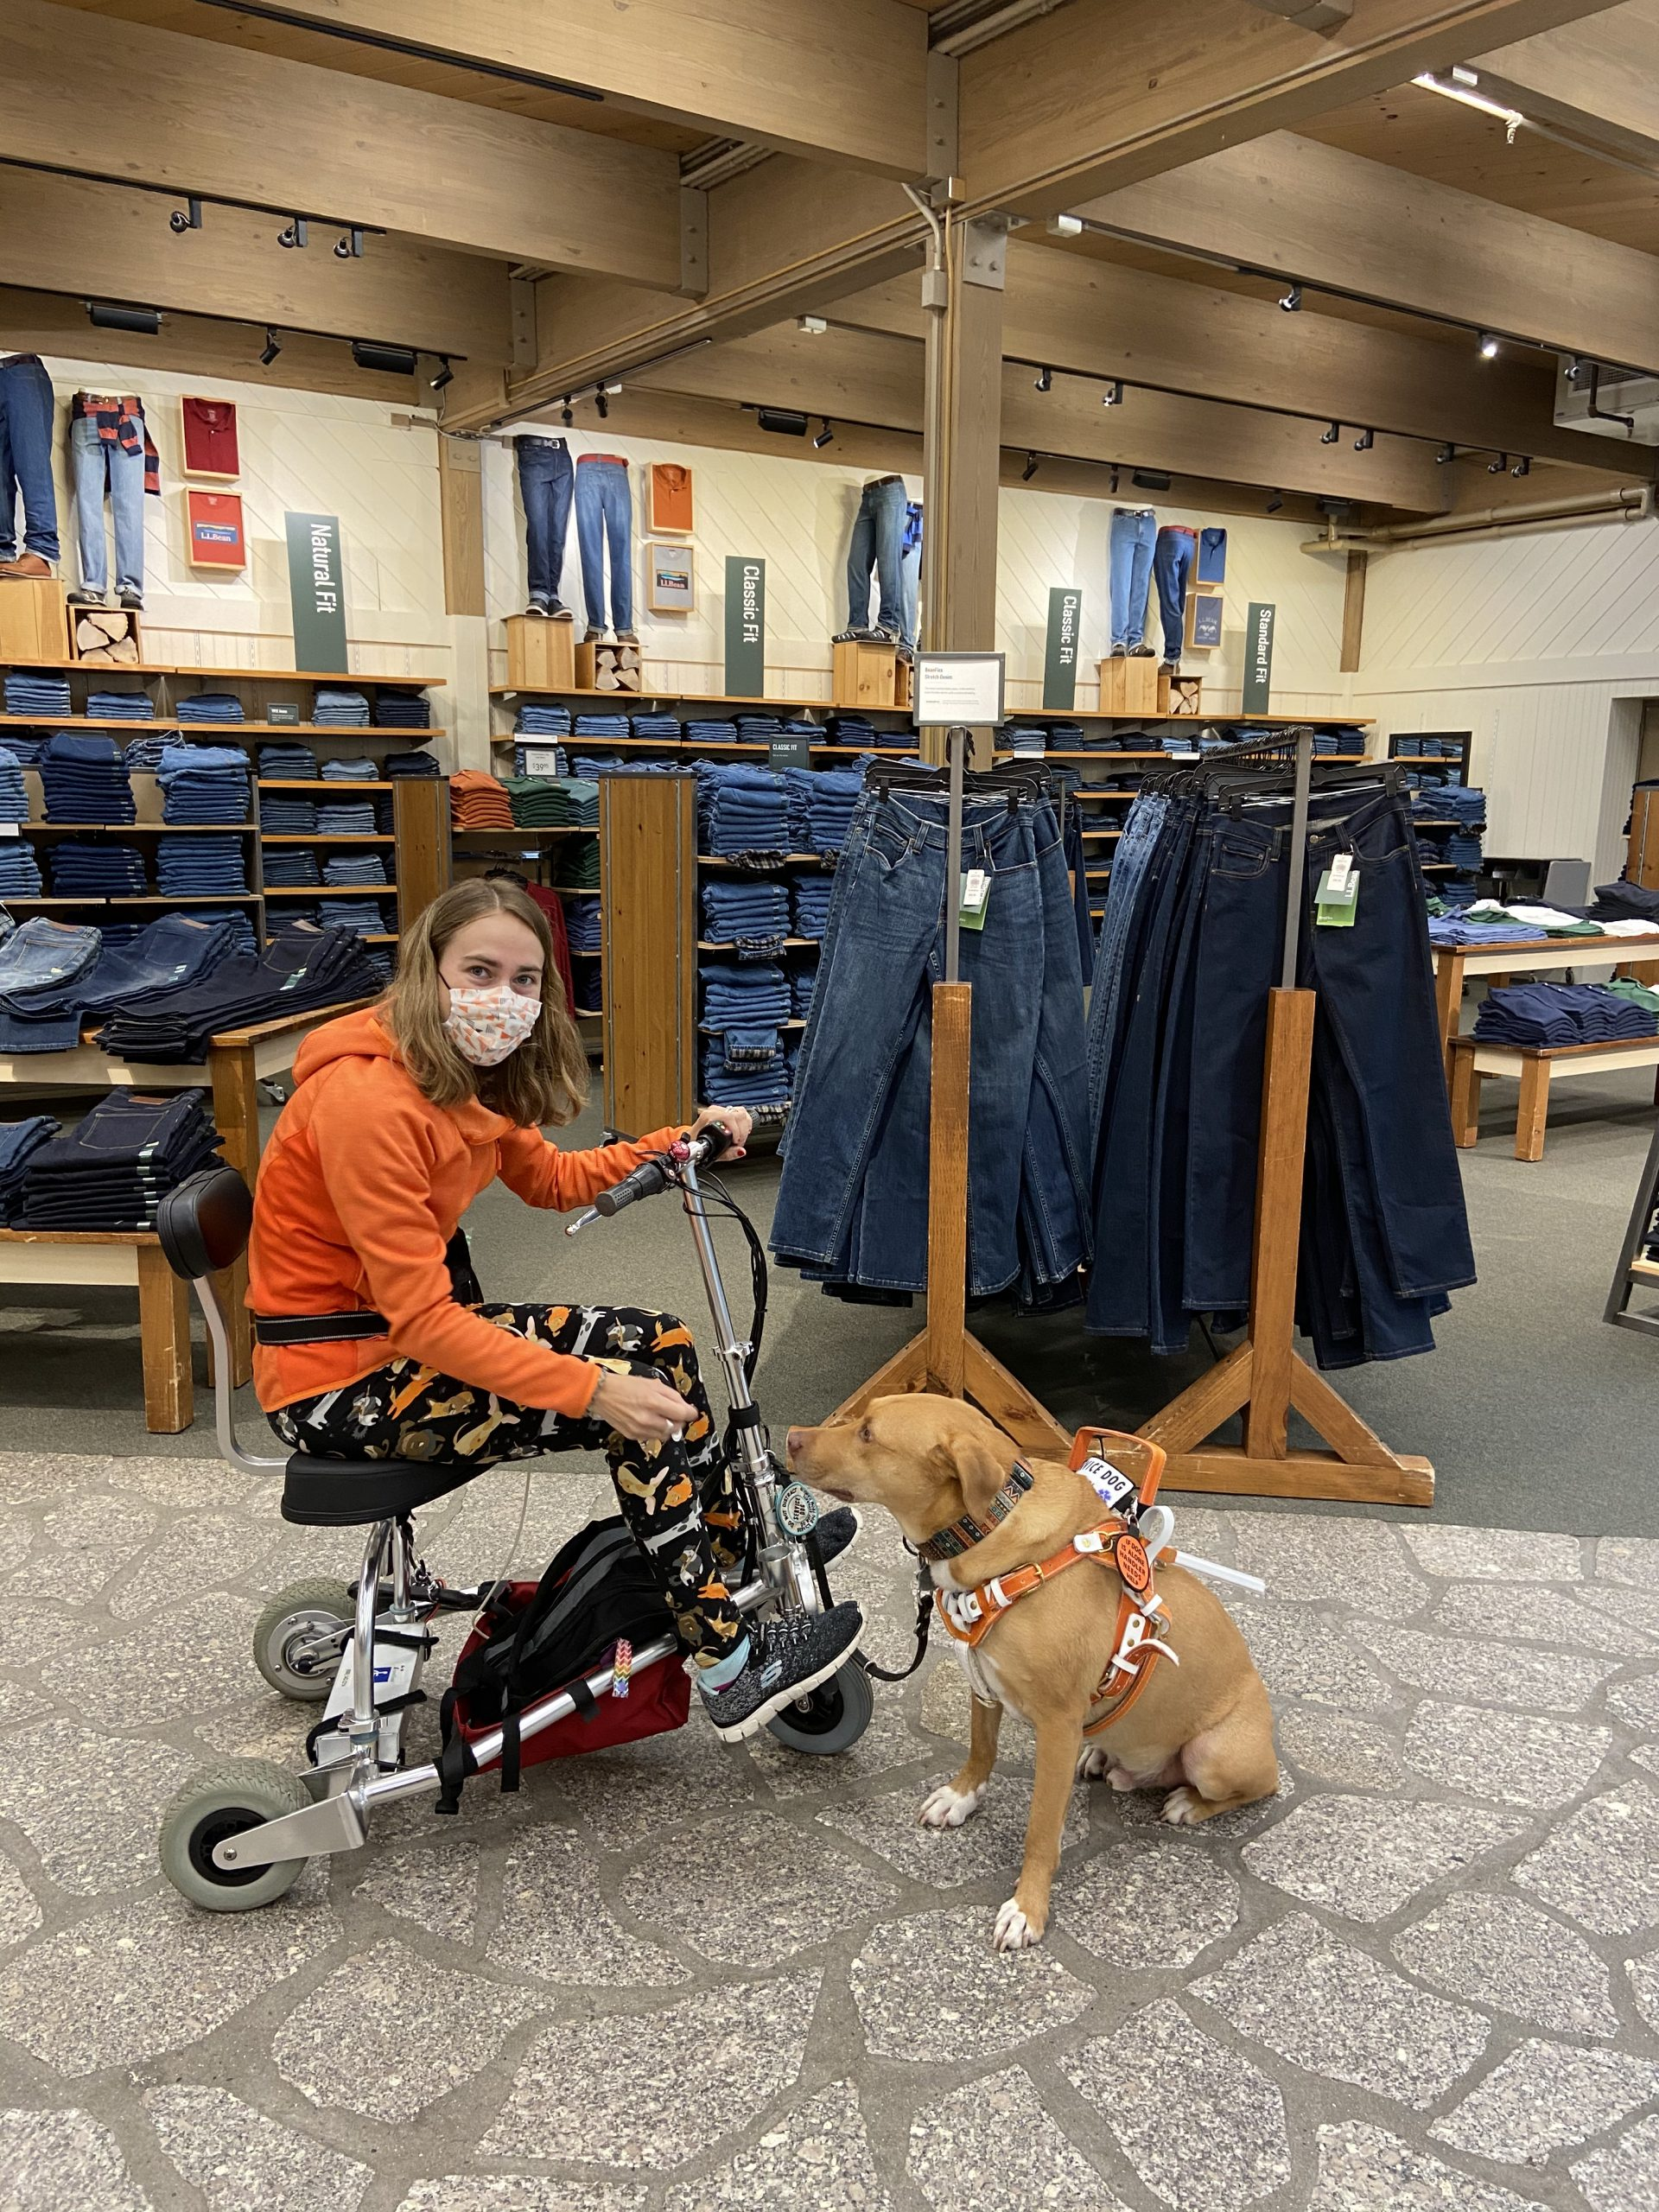 Me on my scooter with my service dog in his orange harness inside LL Bean's Store